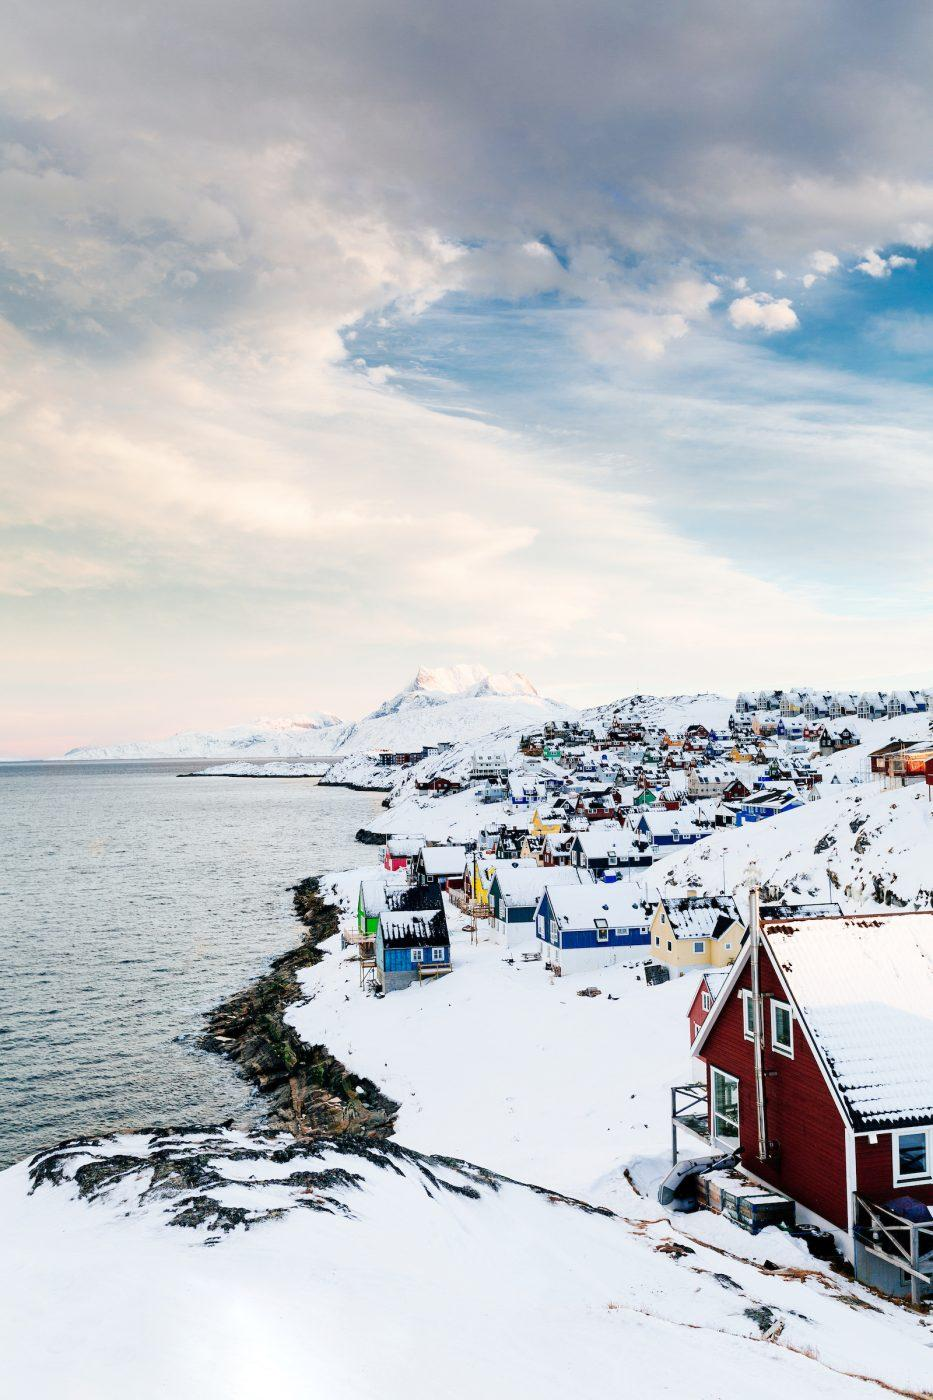 Morning in snow covered Myggedalen in Nuuk, Greenland. Photo by Rebecca Gustafsson